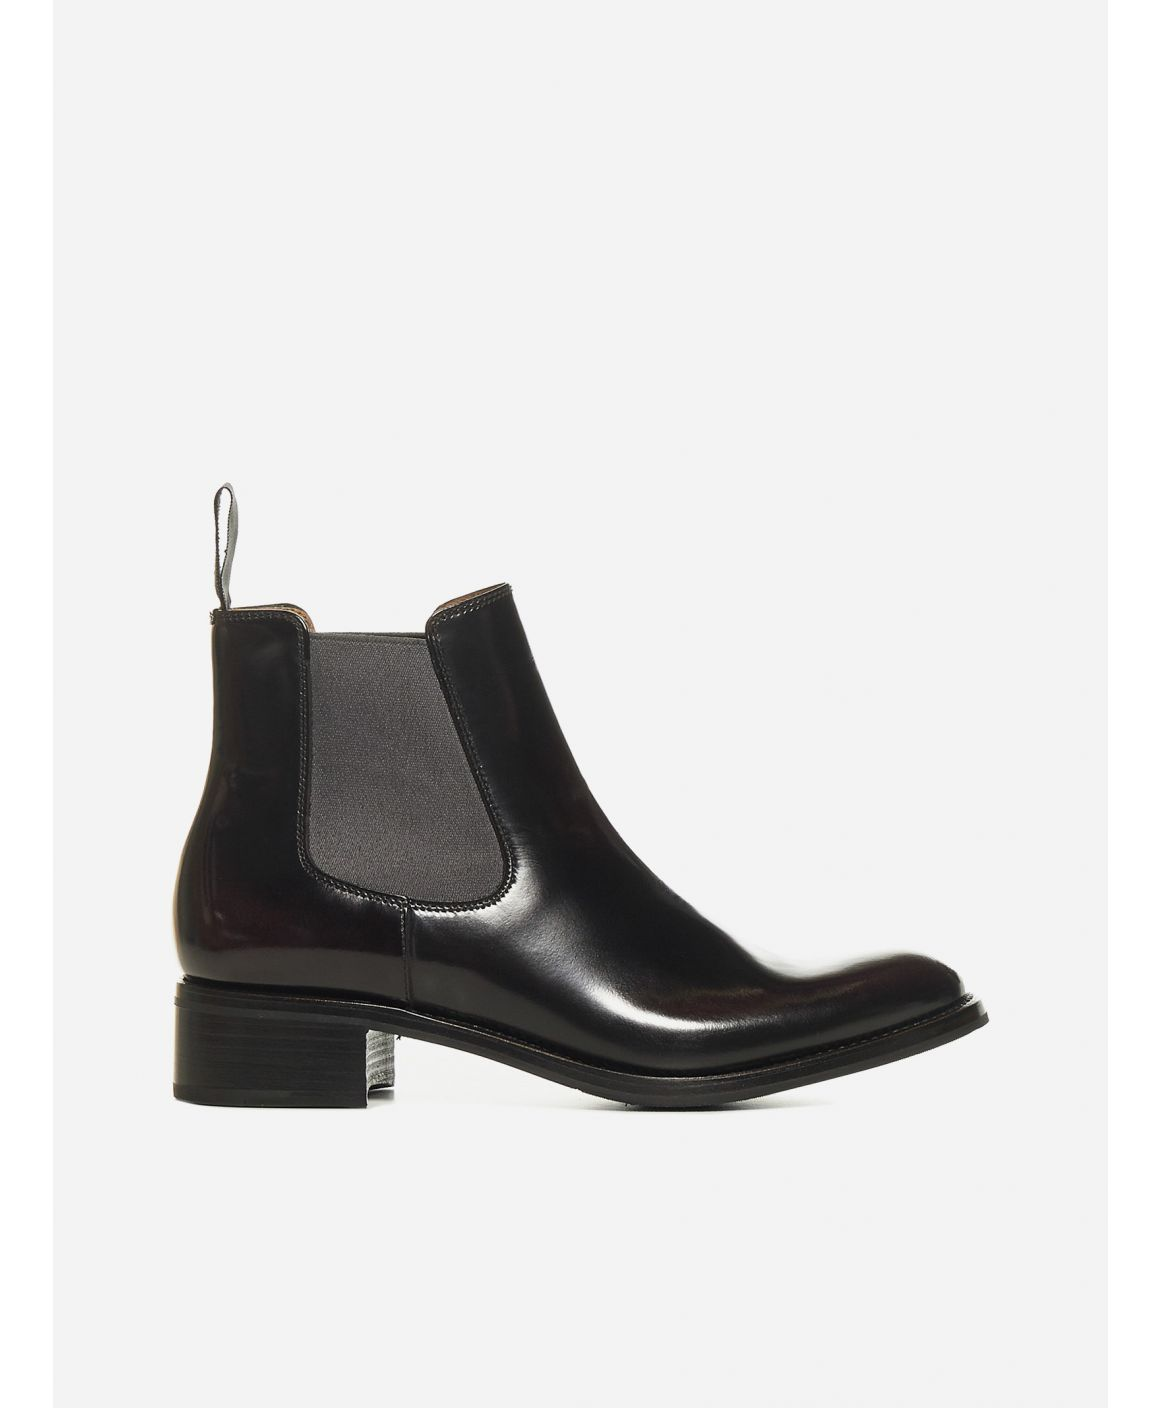 Monmouth 40 calfskin Chelsea boots